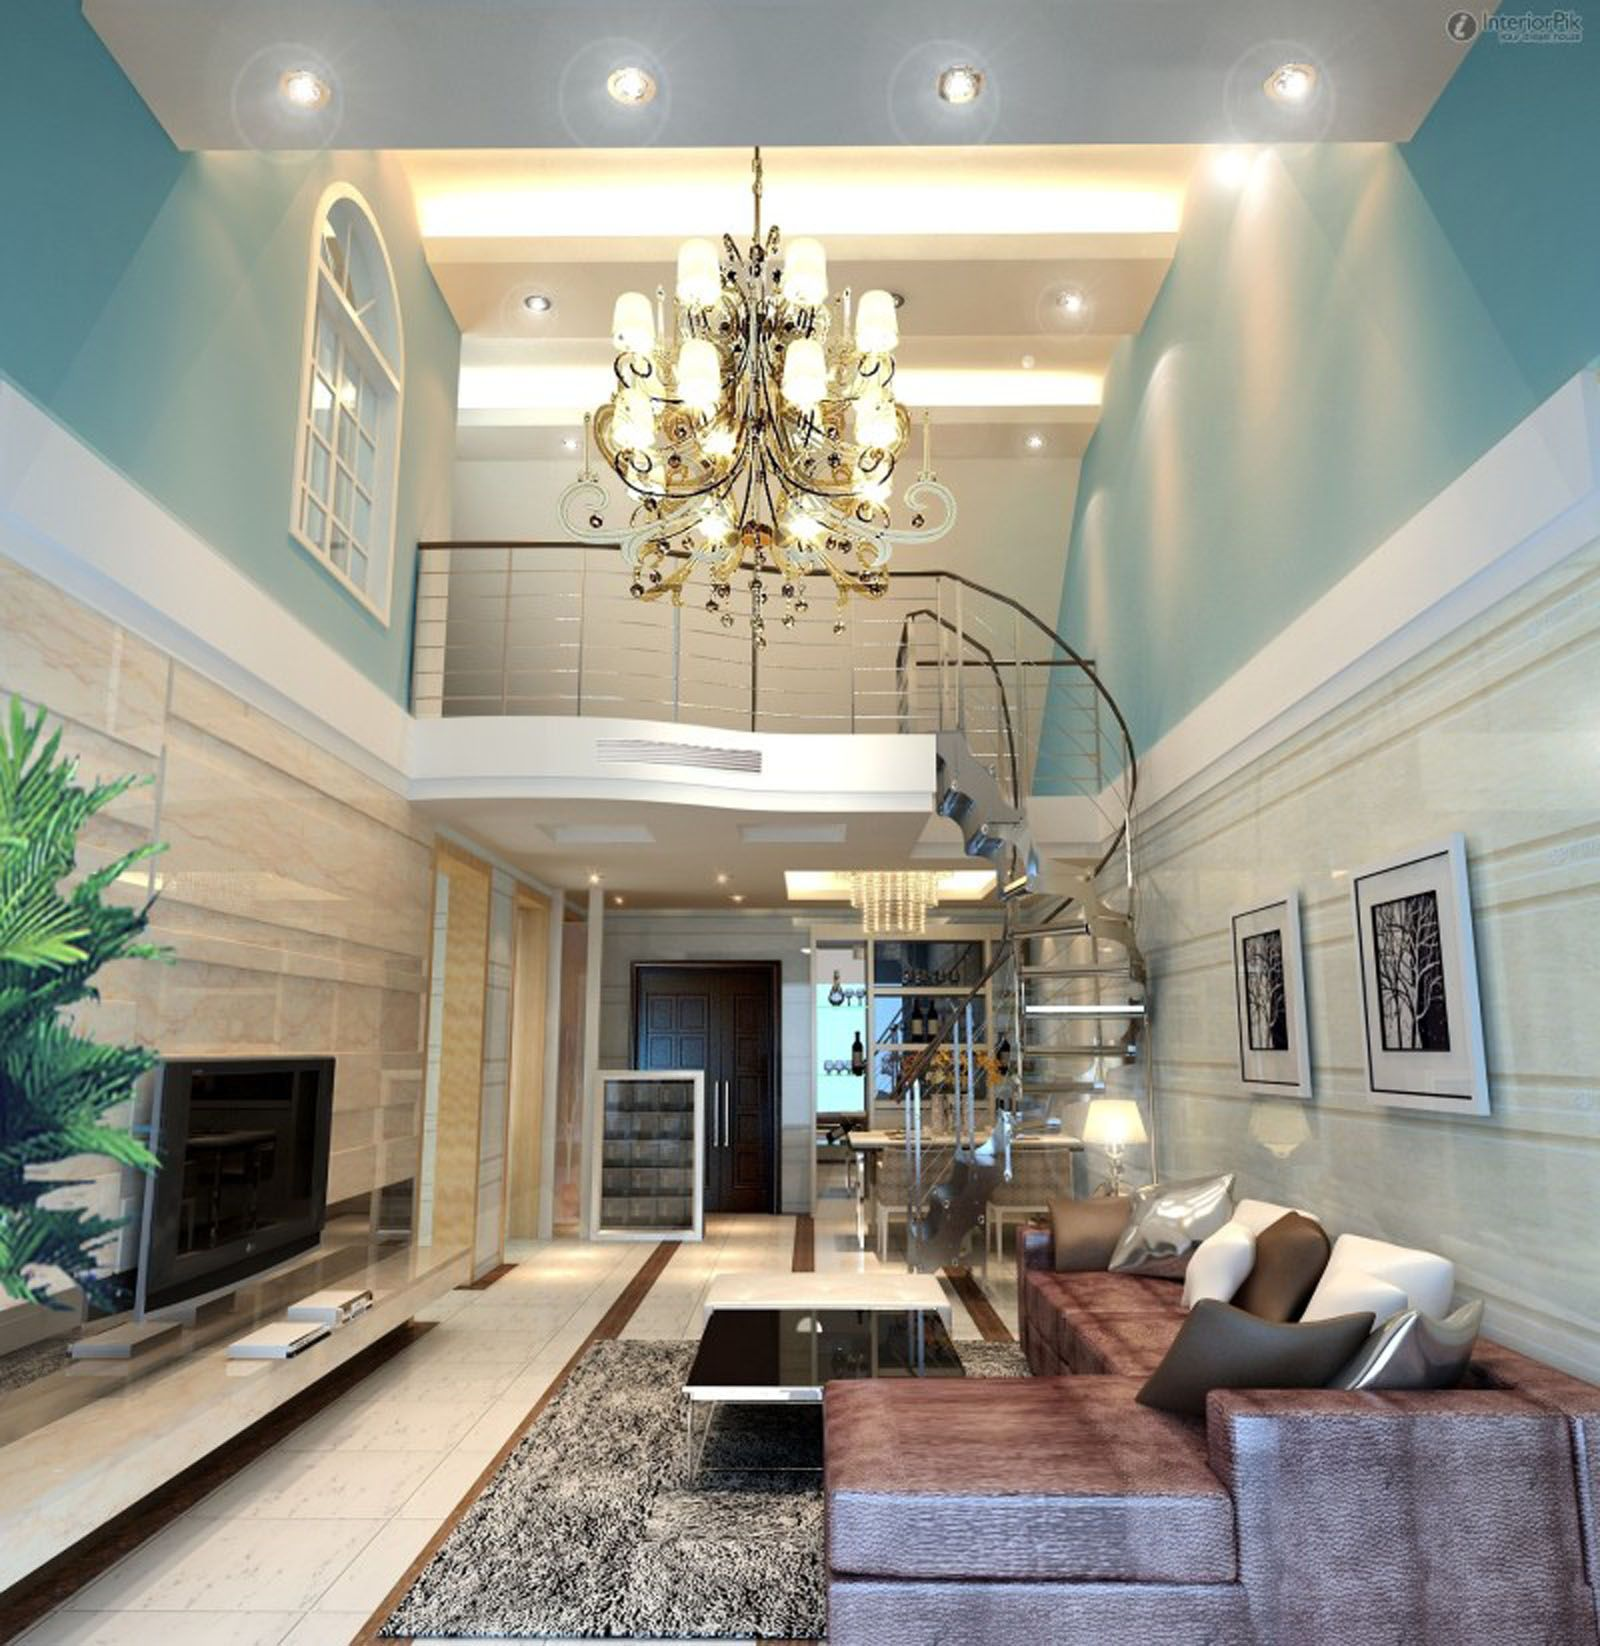 Living room design ideas long and narrow for the home pinterest